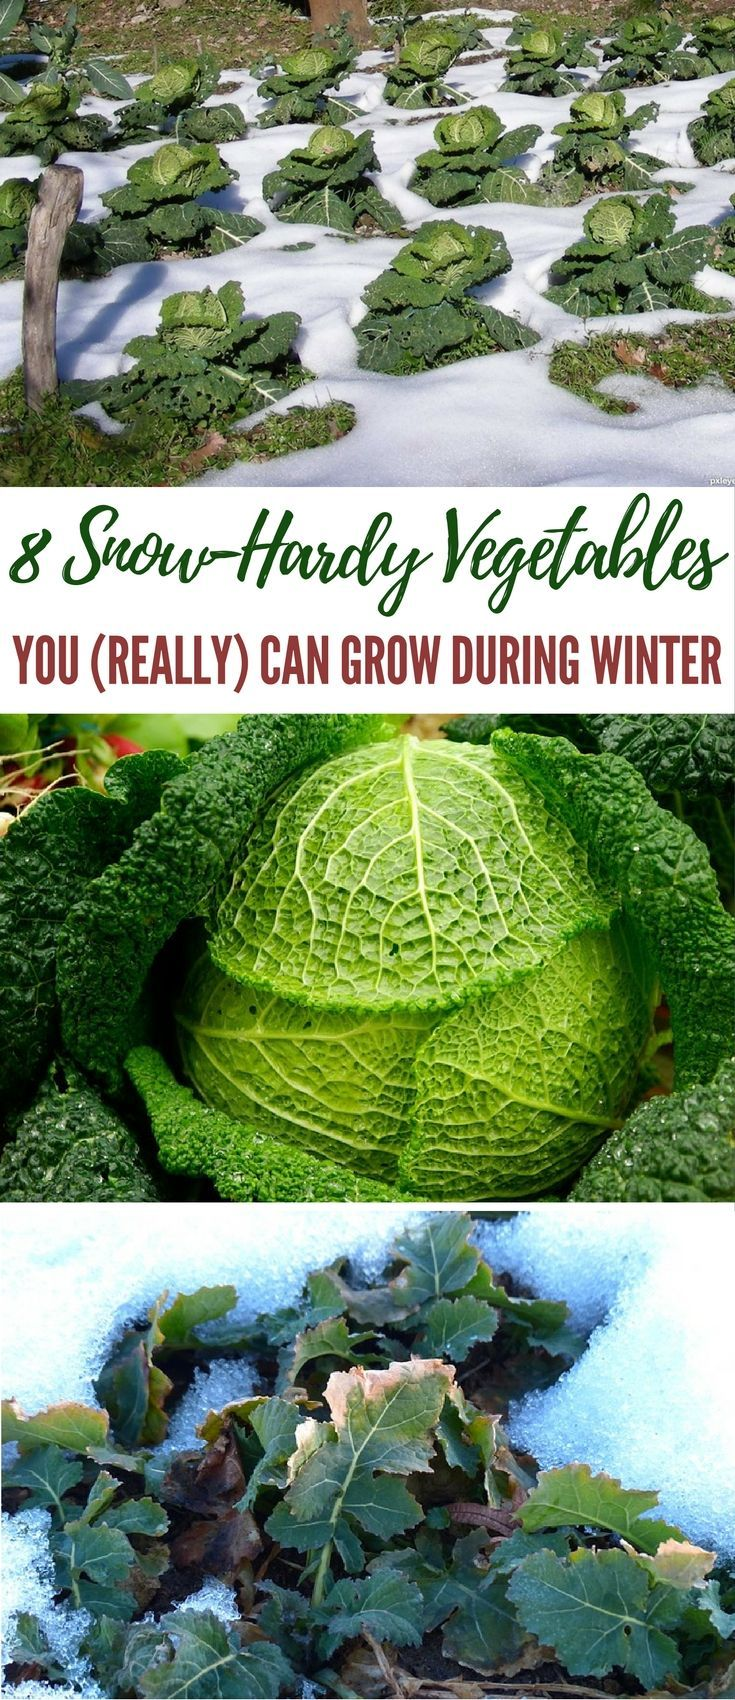 8 SnowHardy Vegetables You (Really) Can Grow During